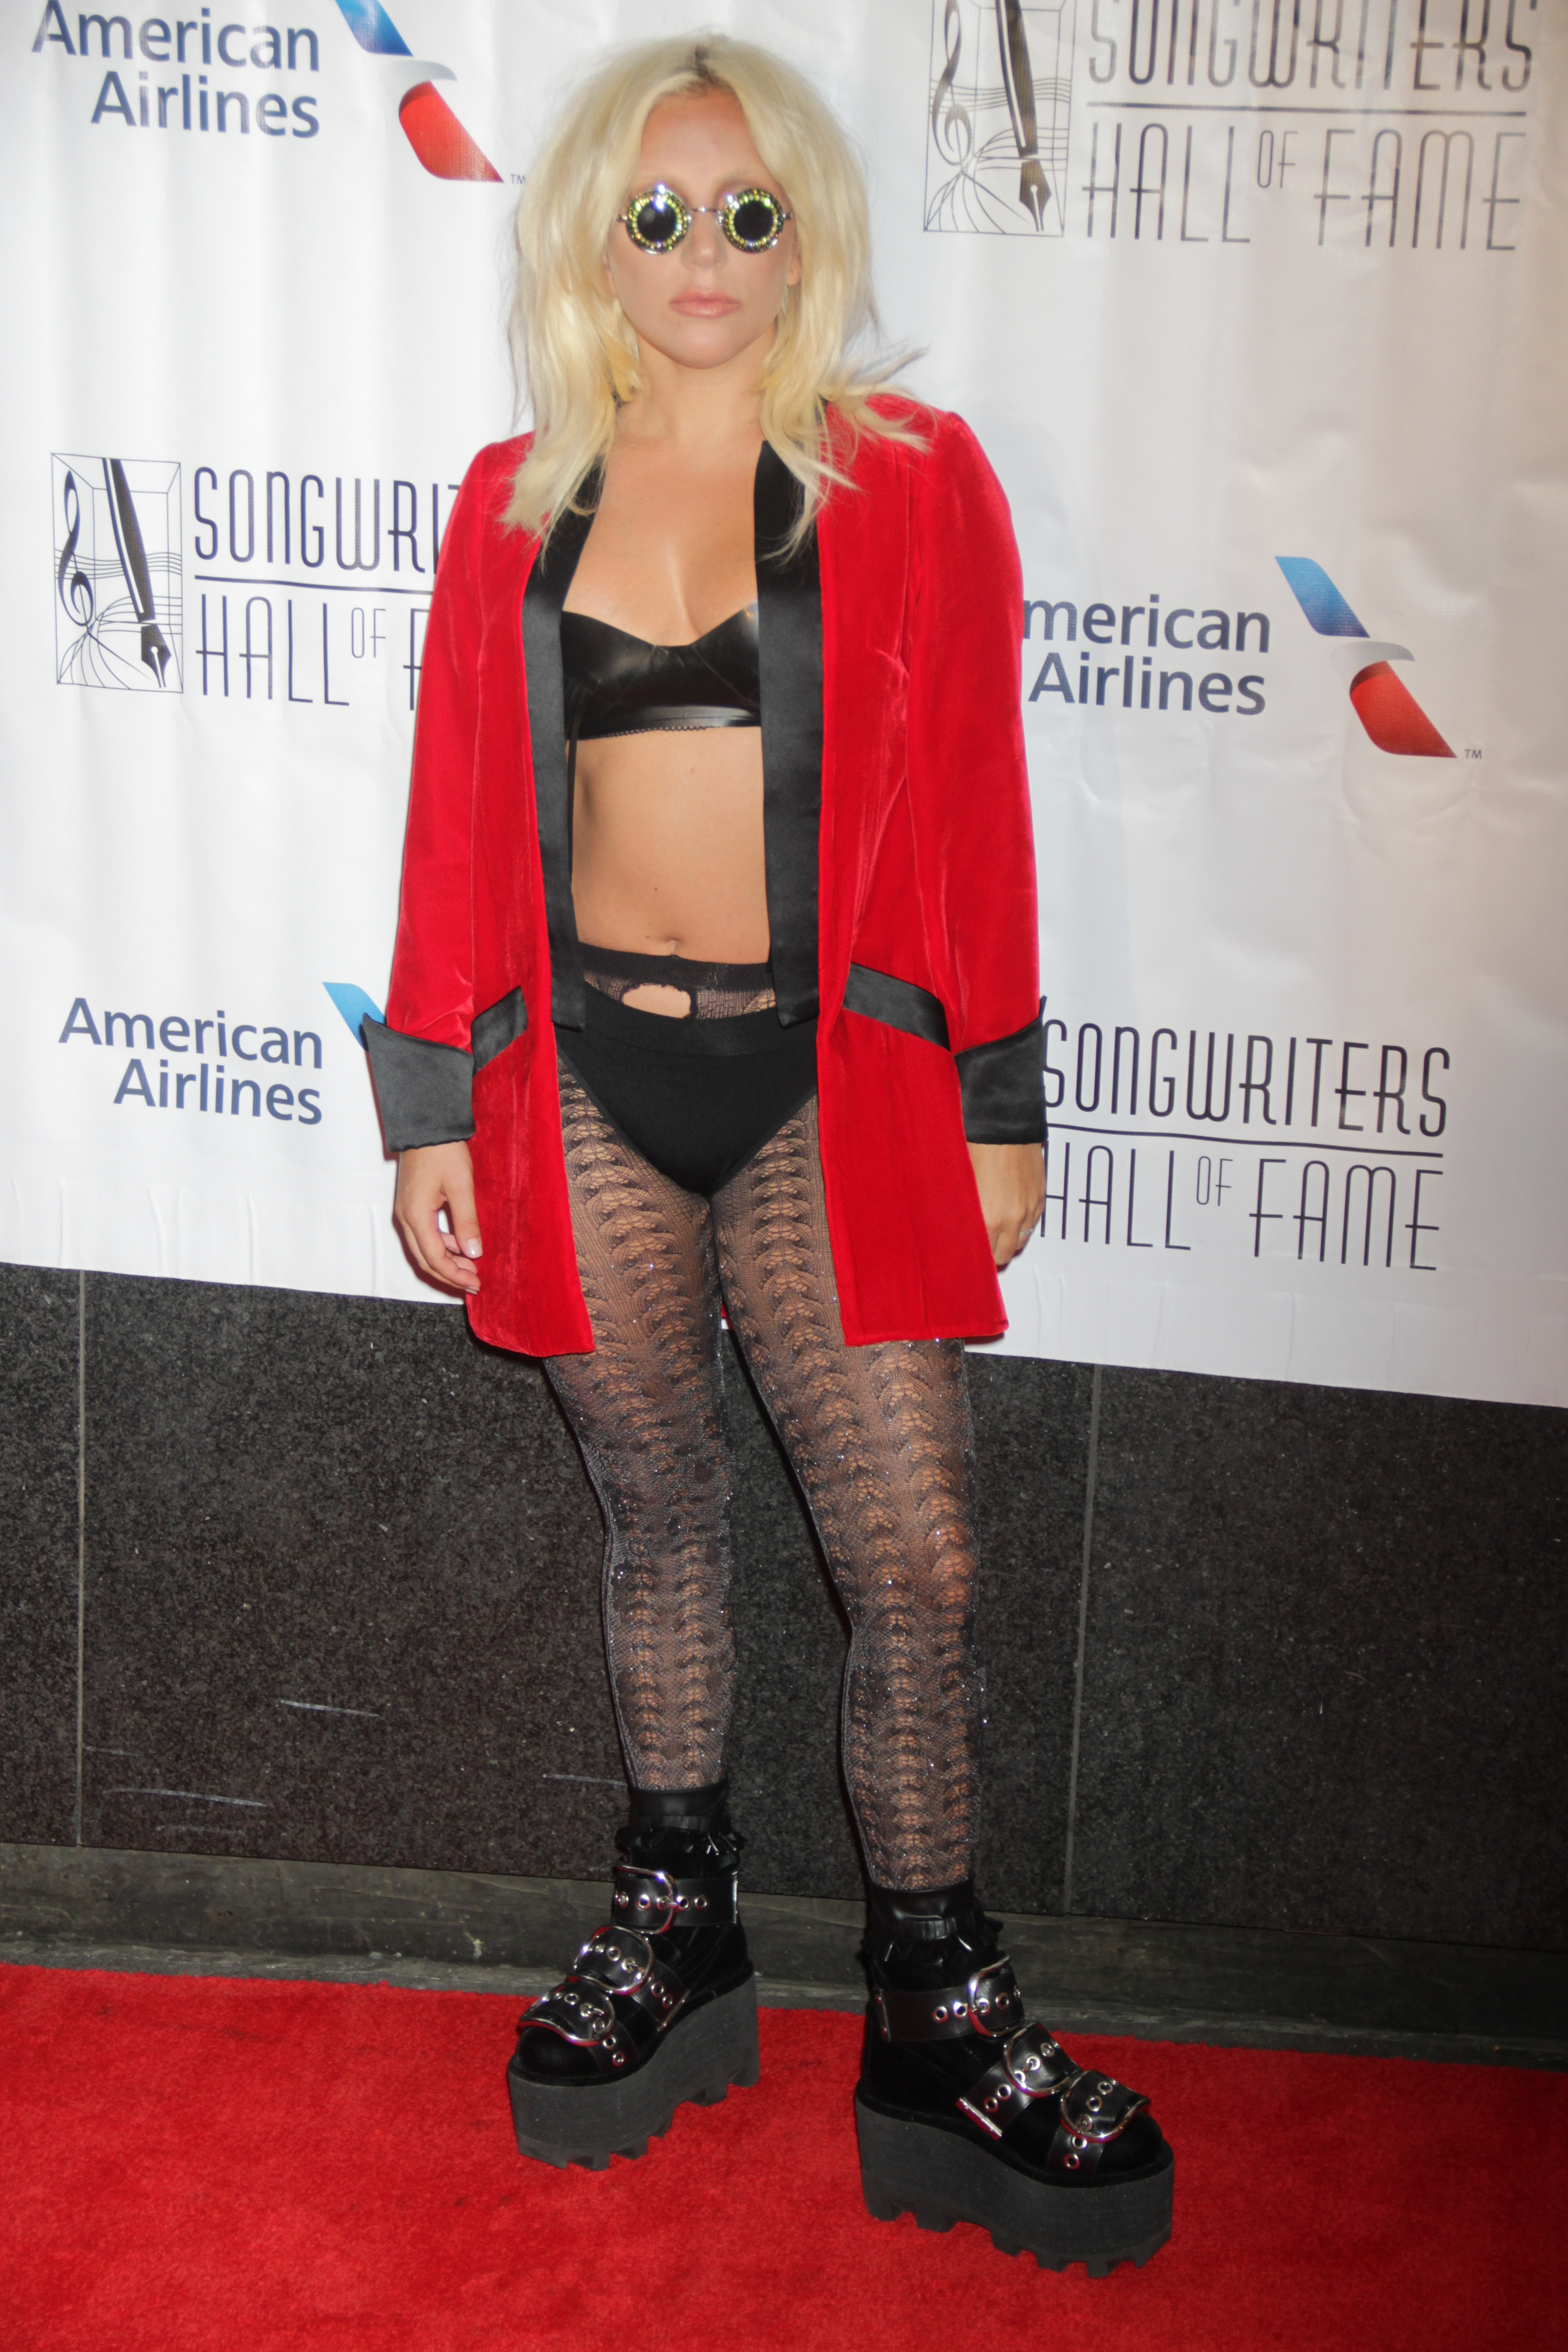 Lady Gaga in bra and panties on red carpet